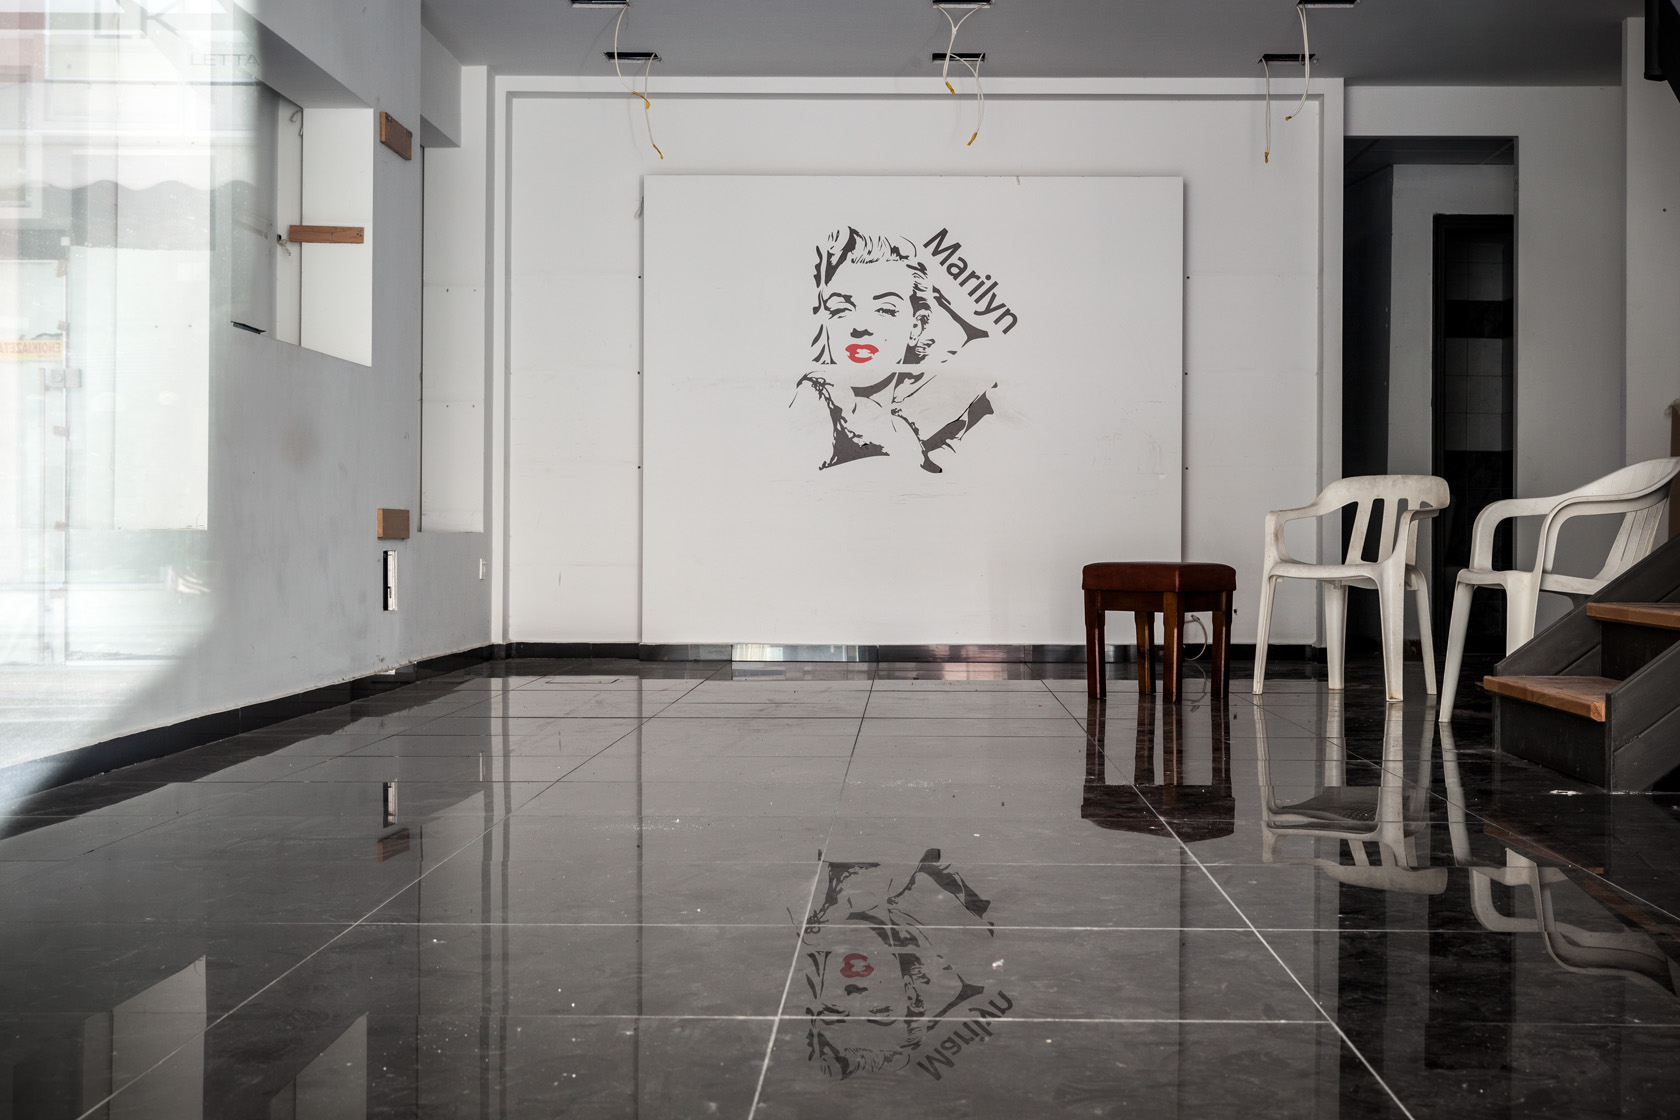 Drawing of Marilyn Monroe on the wall of a closed clothing shop in Amaliada, Greece.